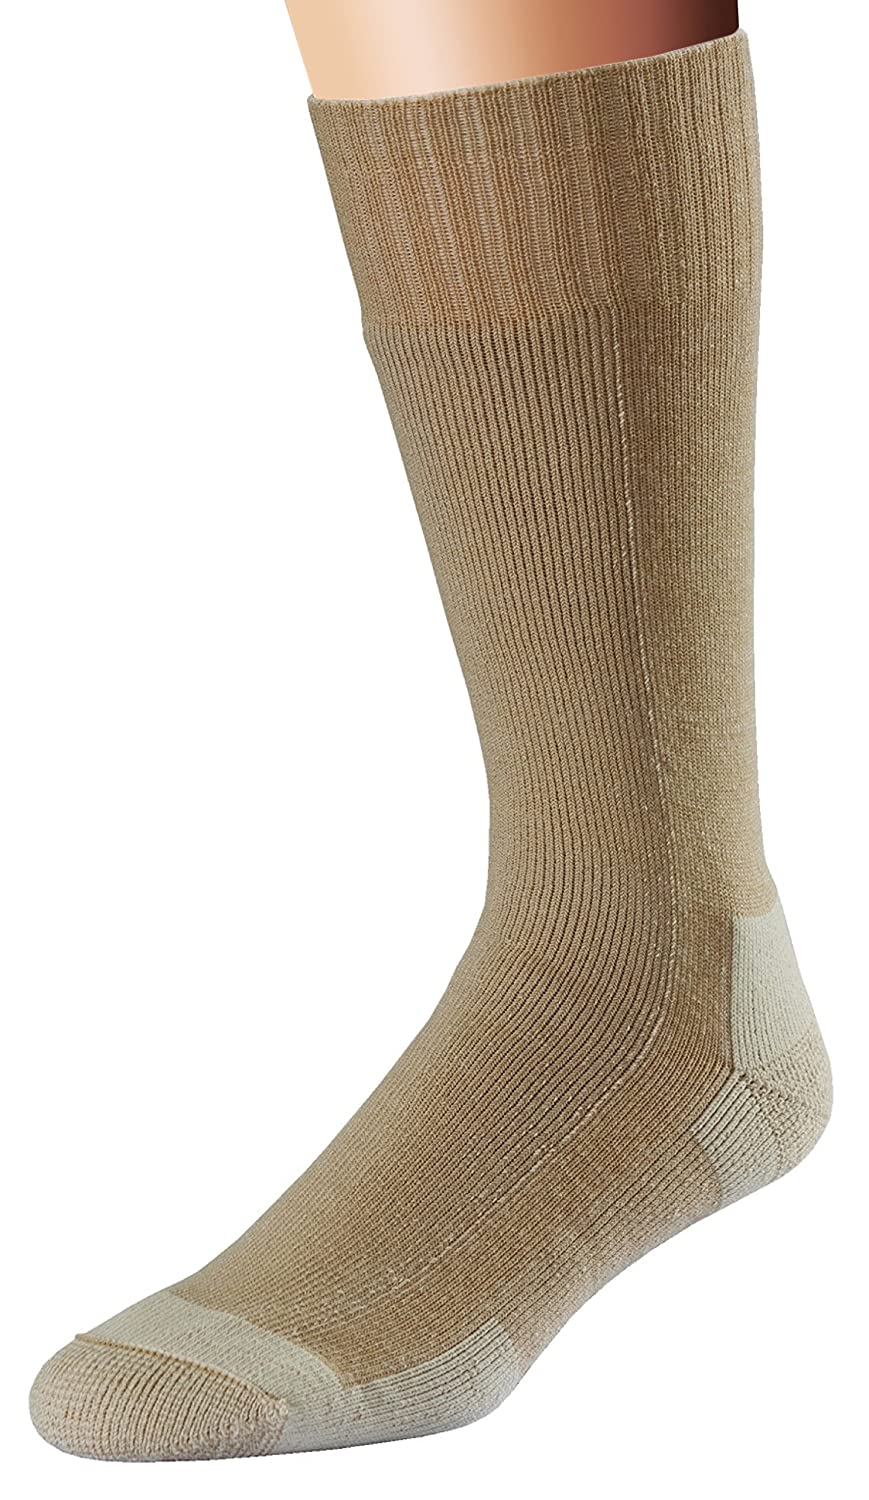 FoxRiver Adult Military Stryker Wick Dry Mid-Calf Boot Socks Fox River Mills Inc.